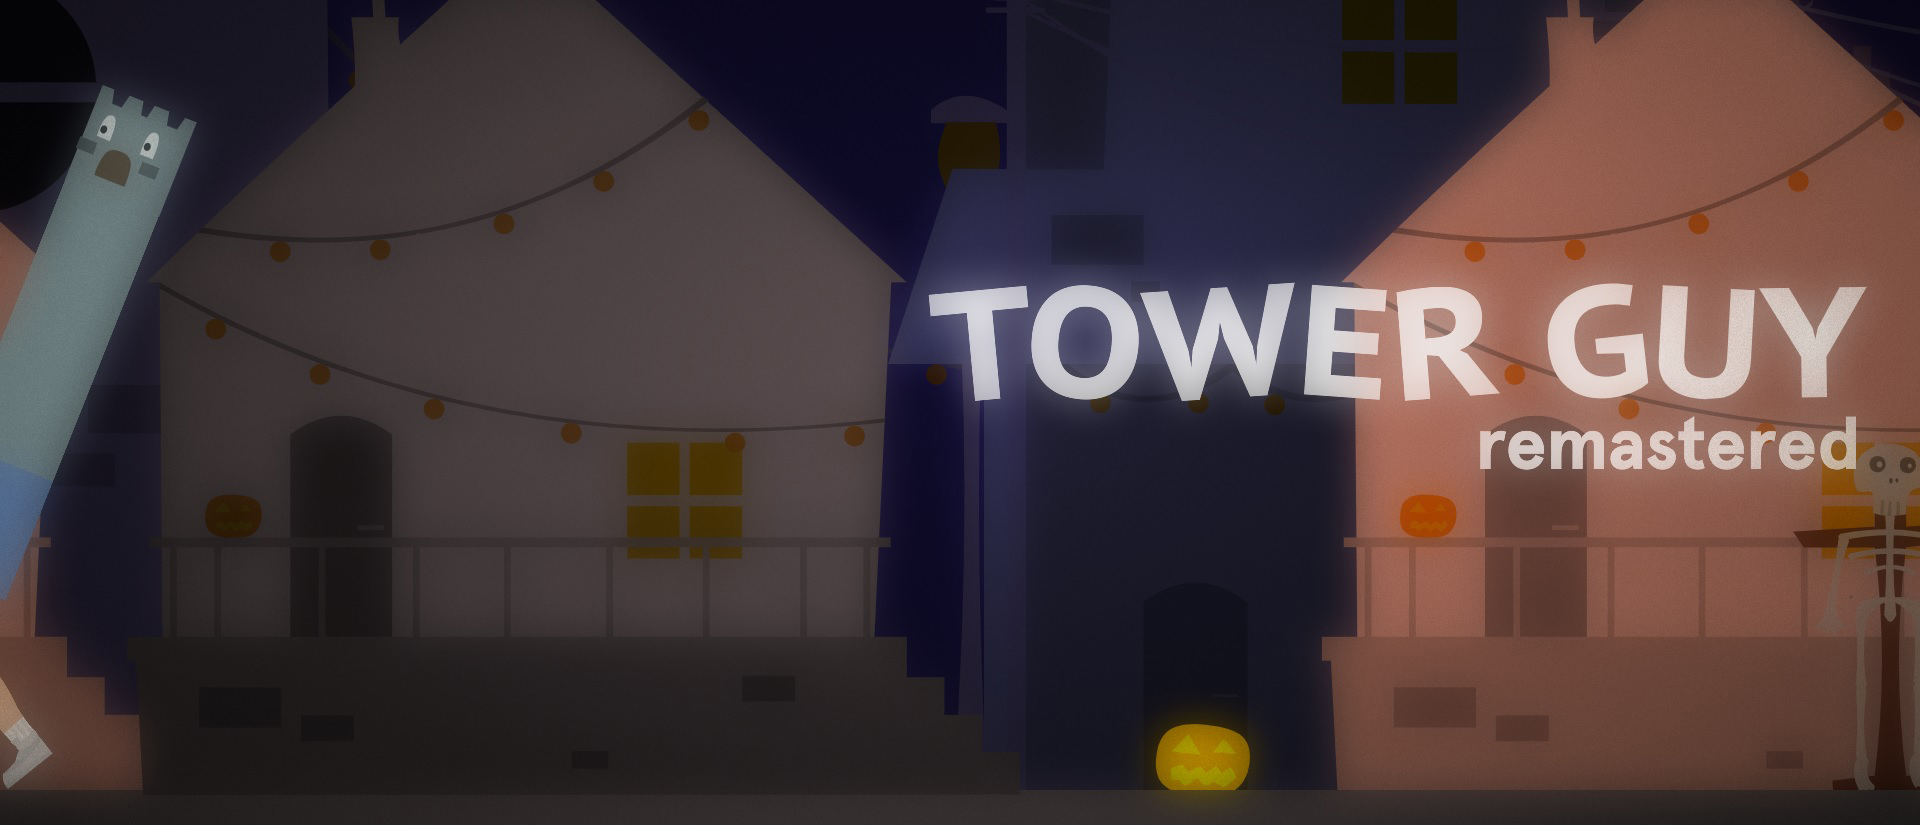 Tower Guy Remastered